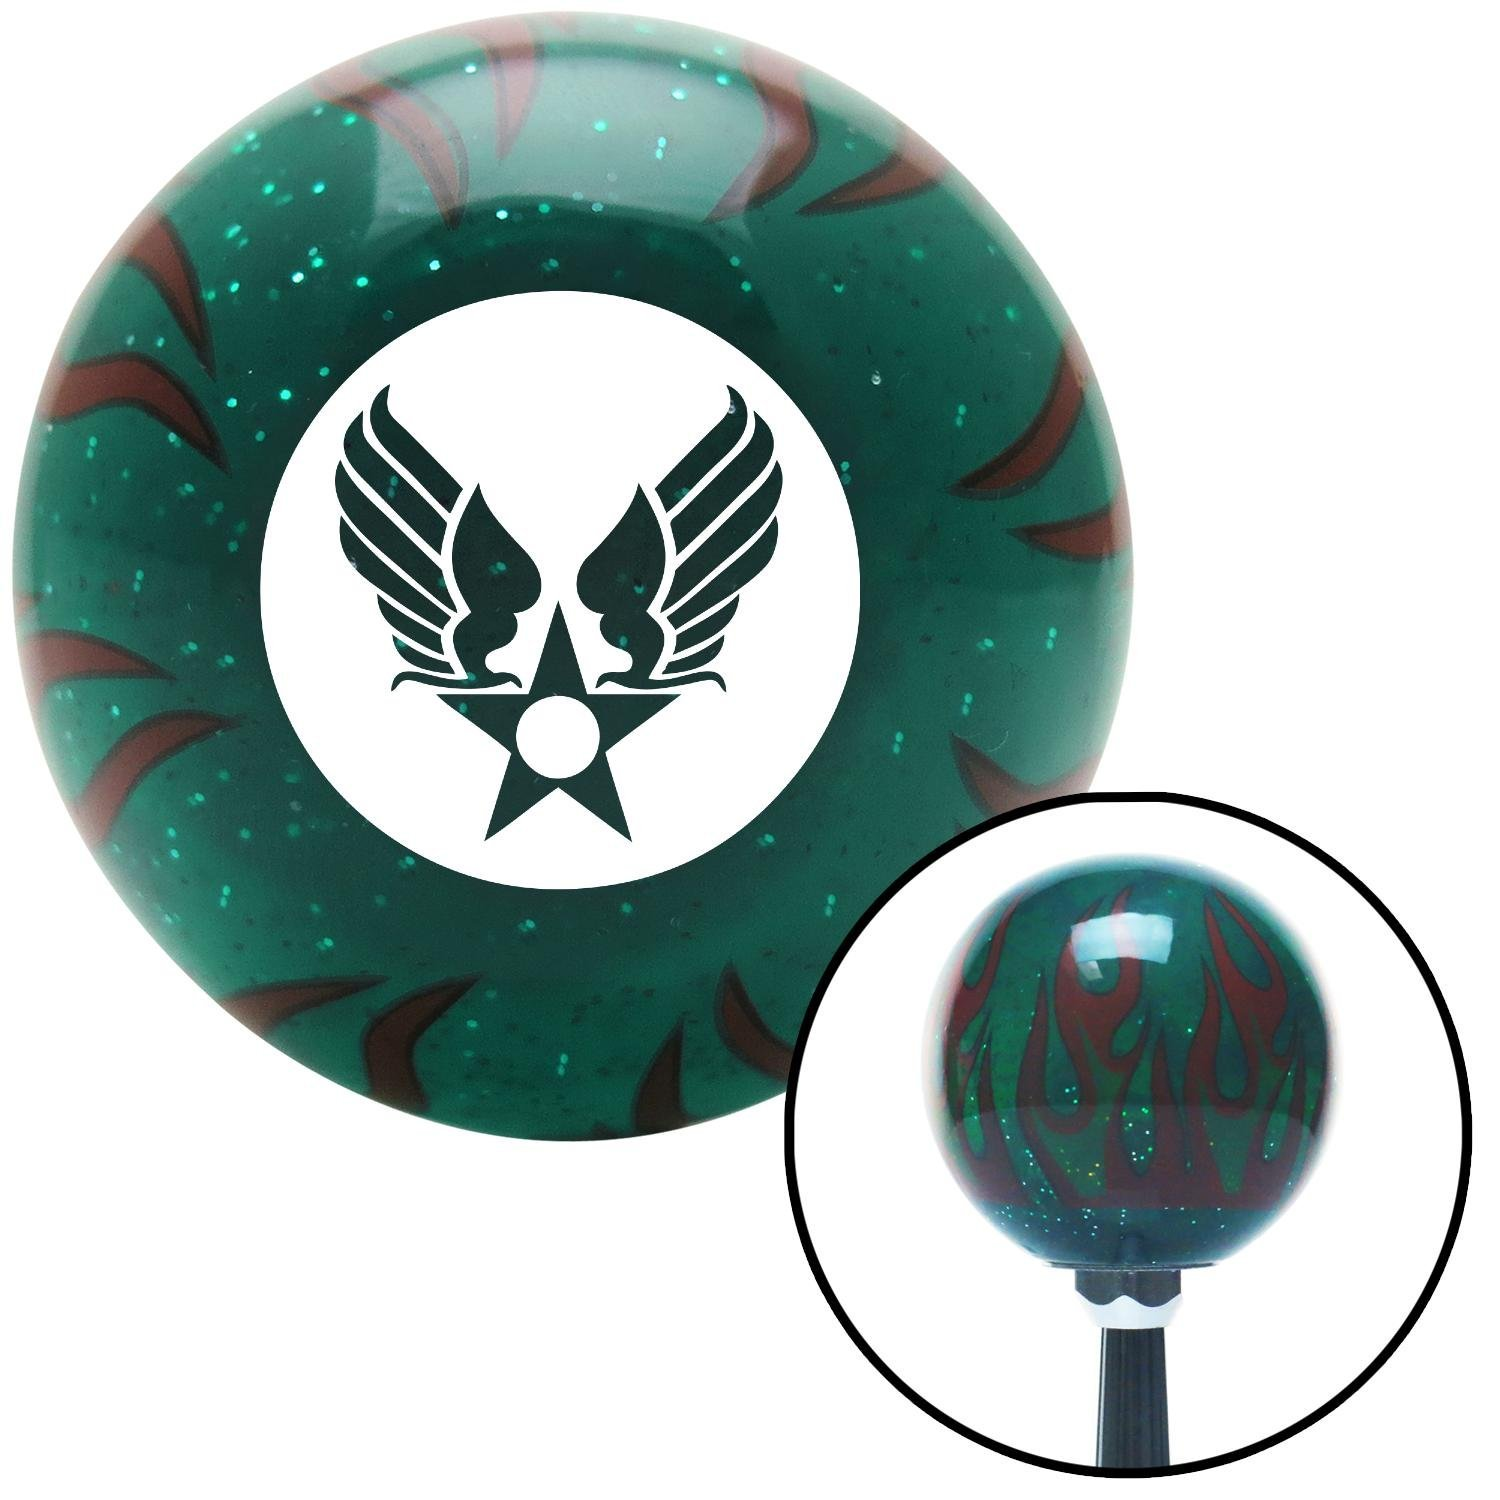 American Shifter 262752 Green Flame Metal Flake Shift Knob with M16 x 1.5 Insert White Army Air Corps